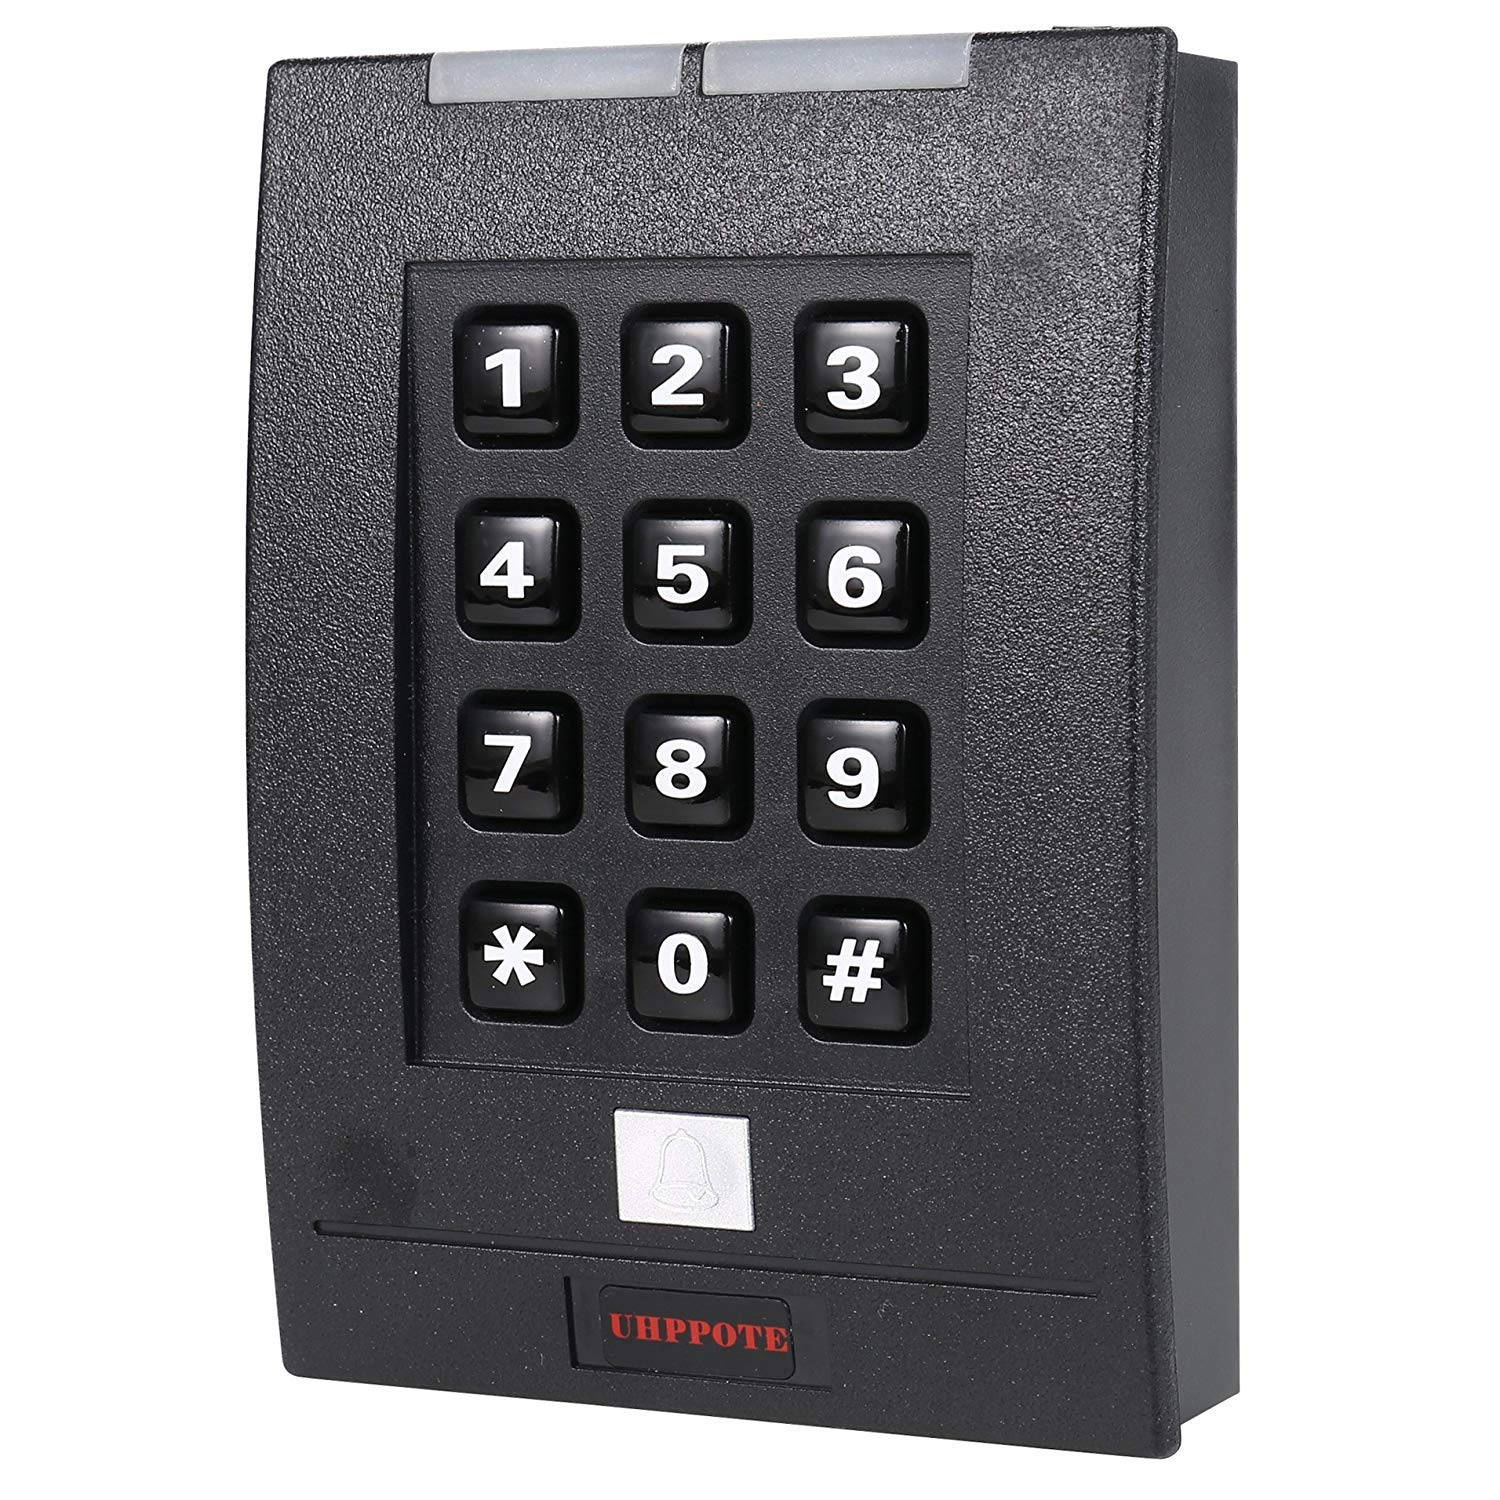 UHPPOTE Digital Access Control Keypad RFID ID Card Reader Single Door Support 250 Users